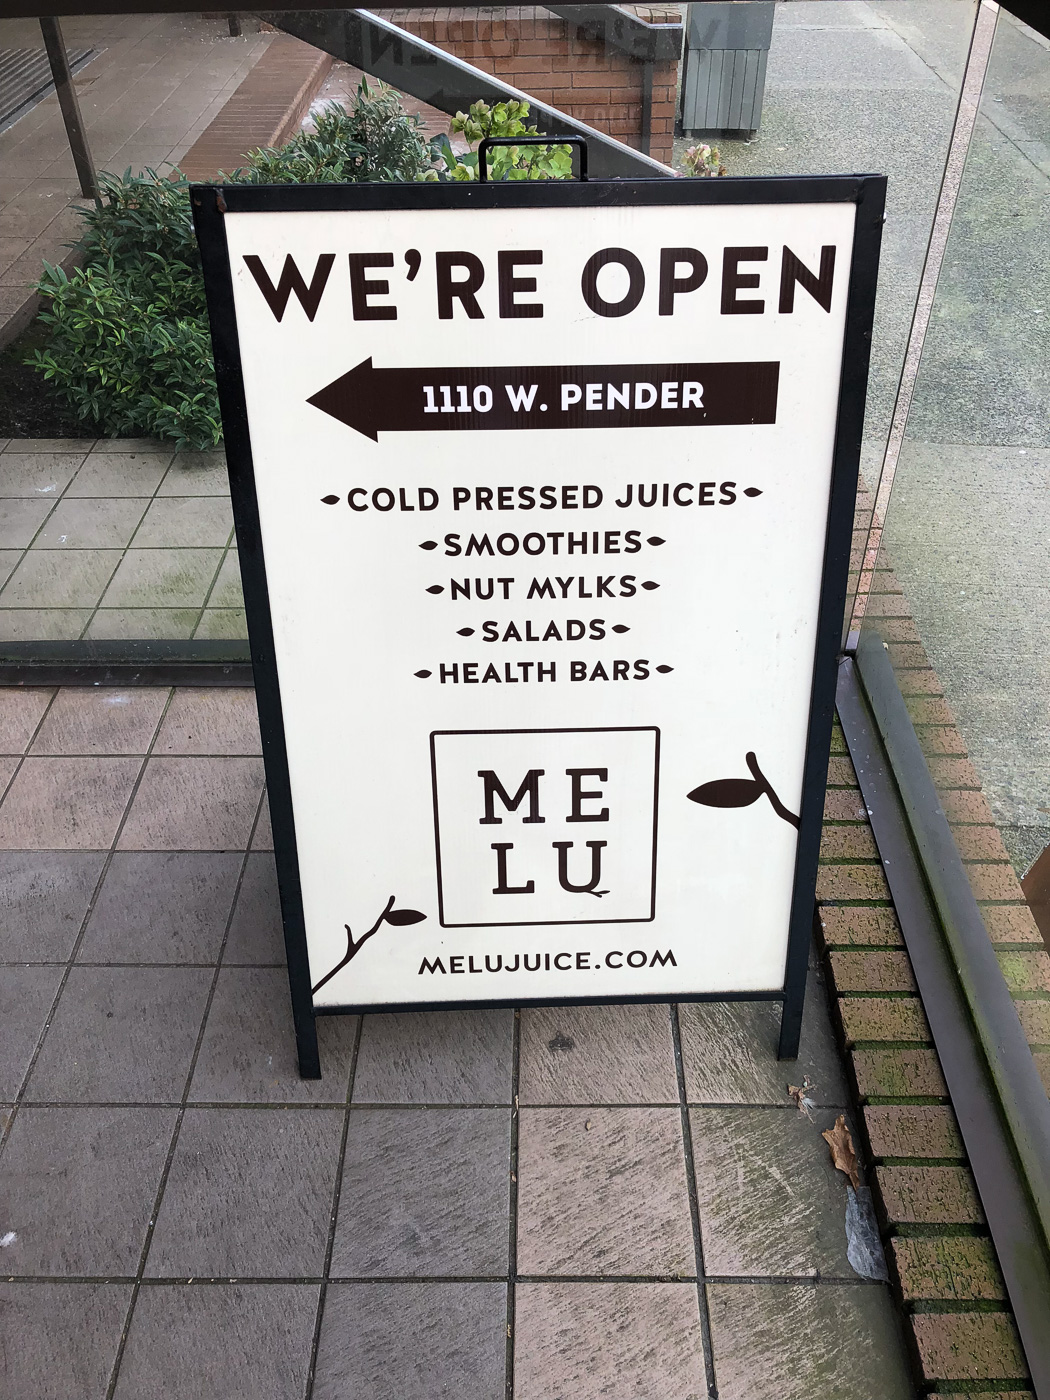 Sandwich board sign on patio advertising Melu Juice